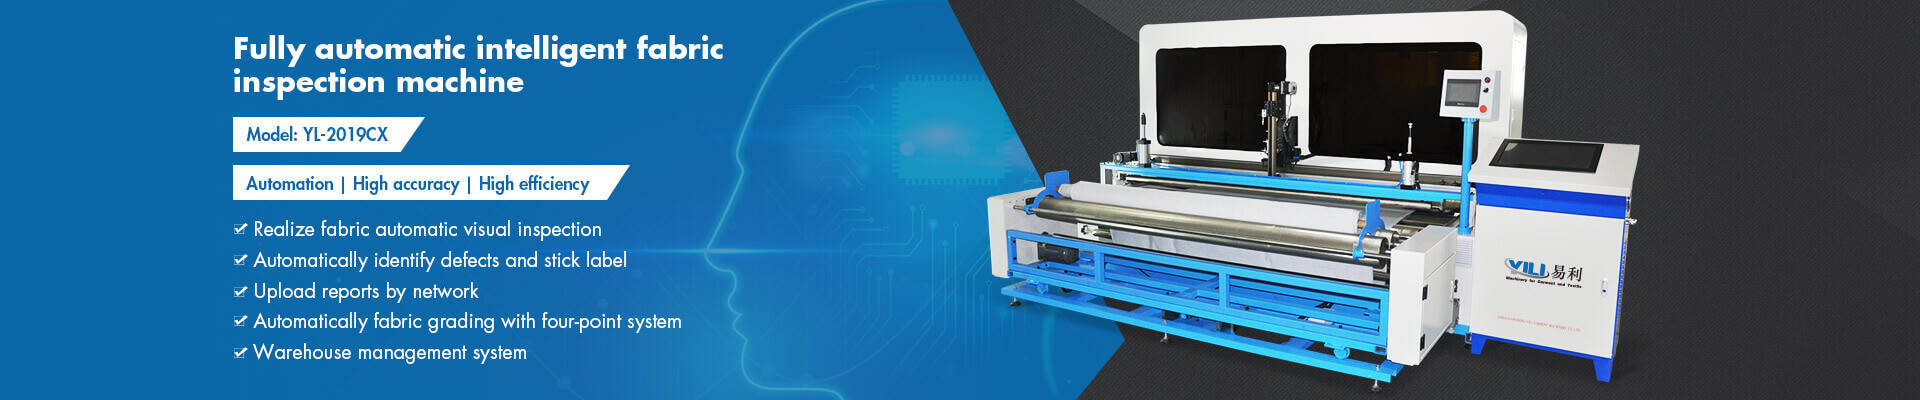 Fully Automatic Intelligent Fabric Inspection Machine